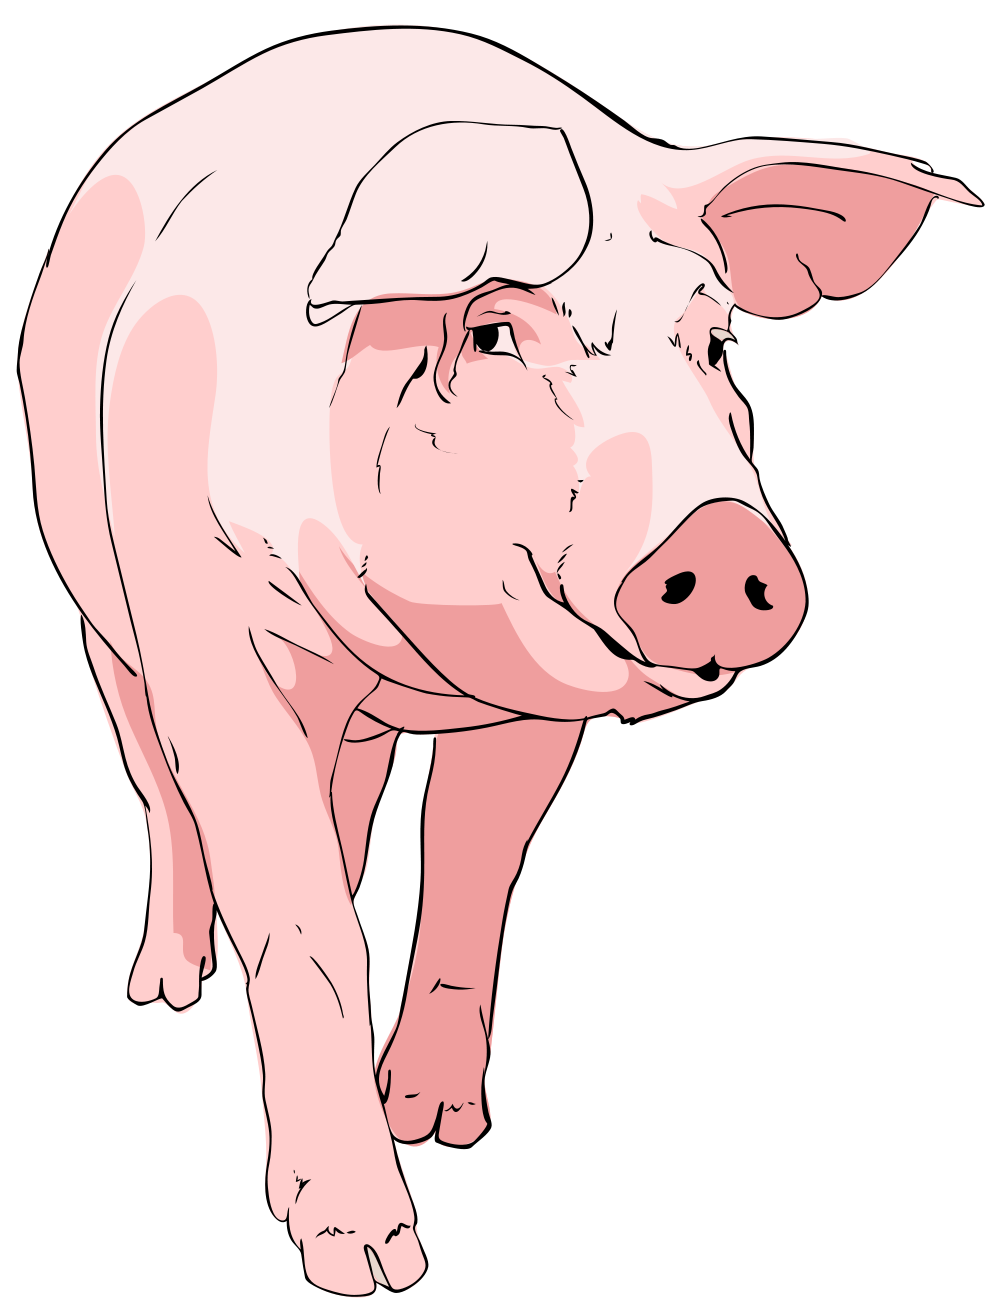 Pig clipart fetal pig. File svg wikimedia commons